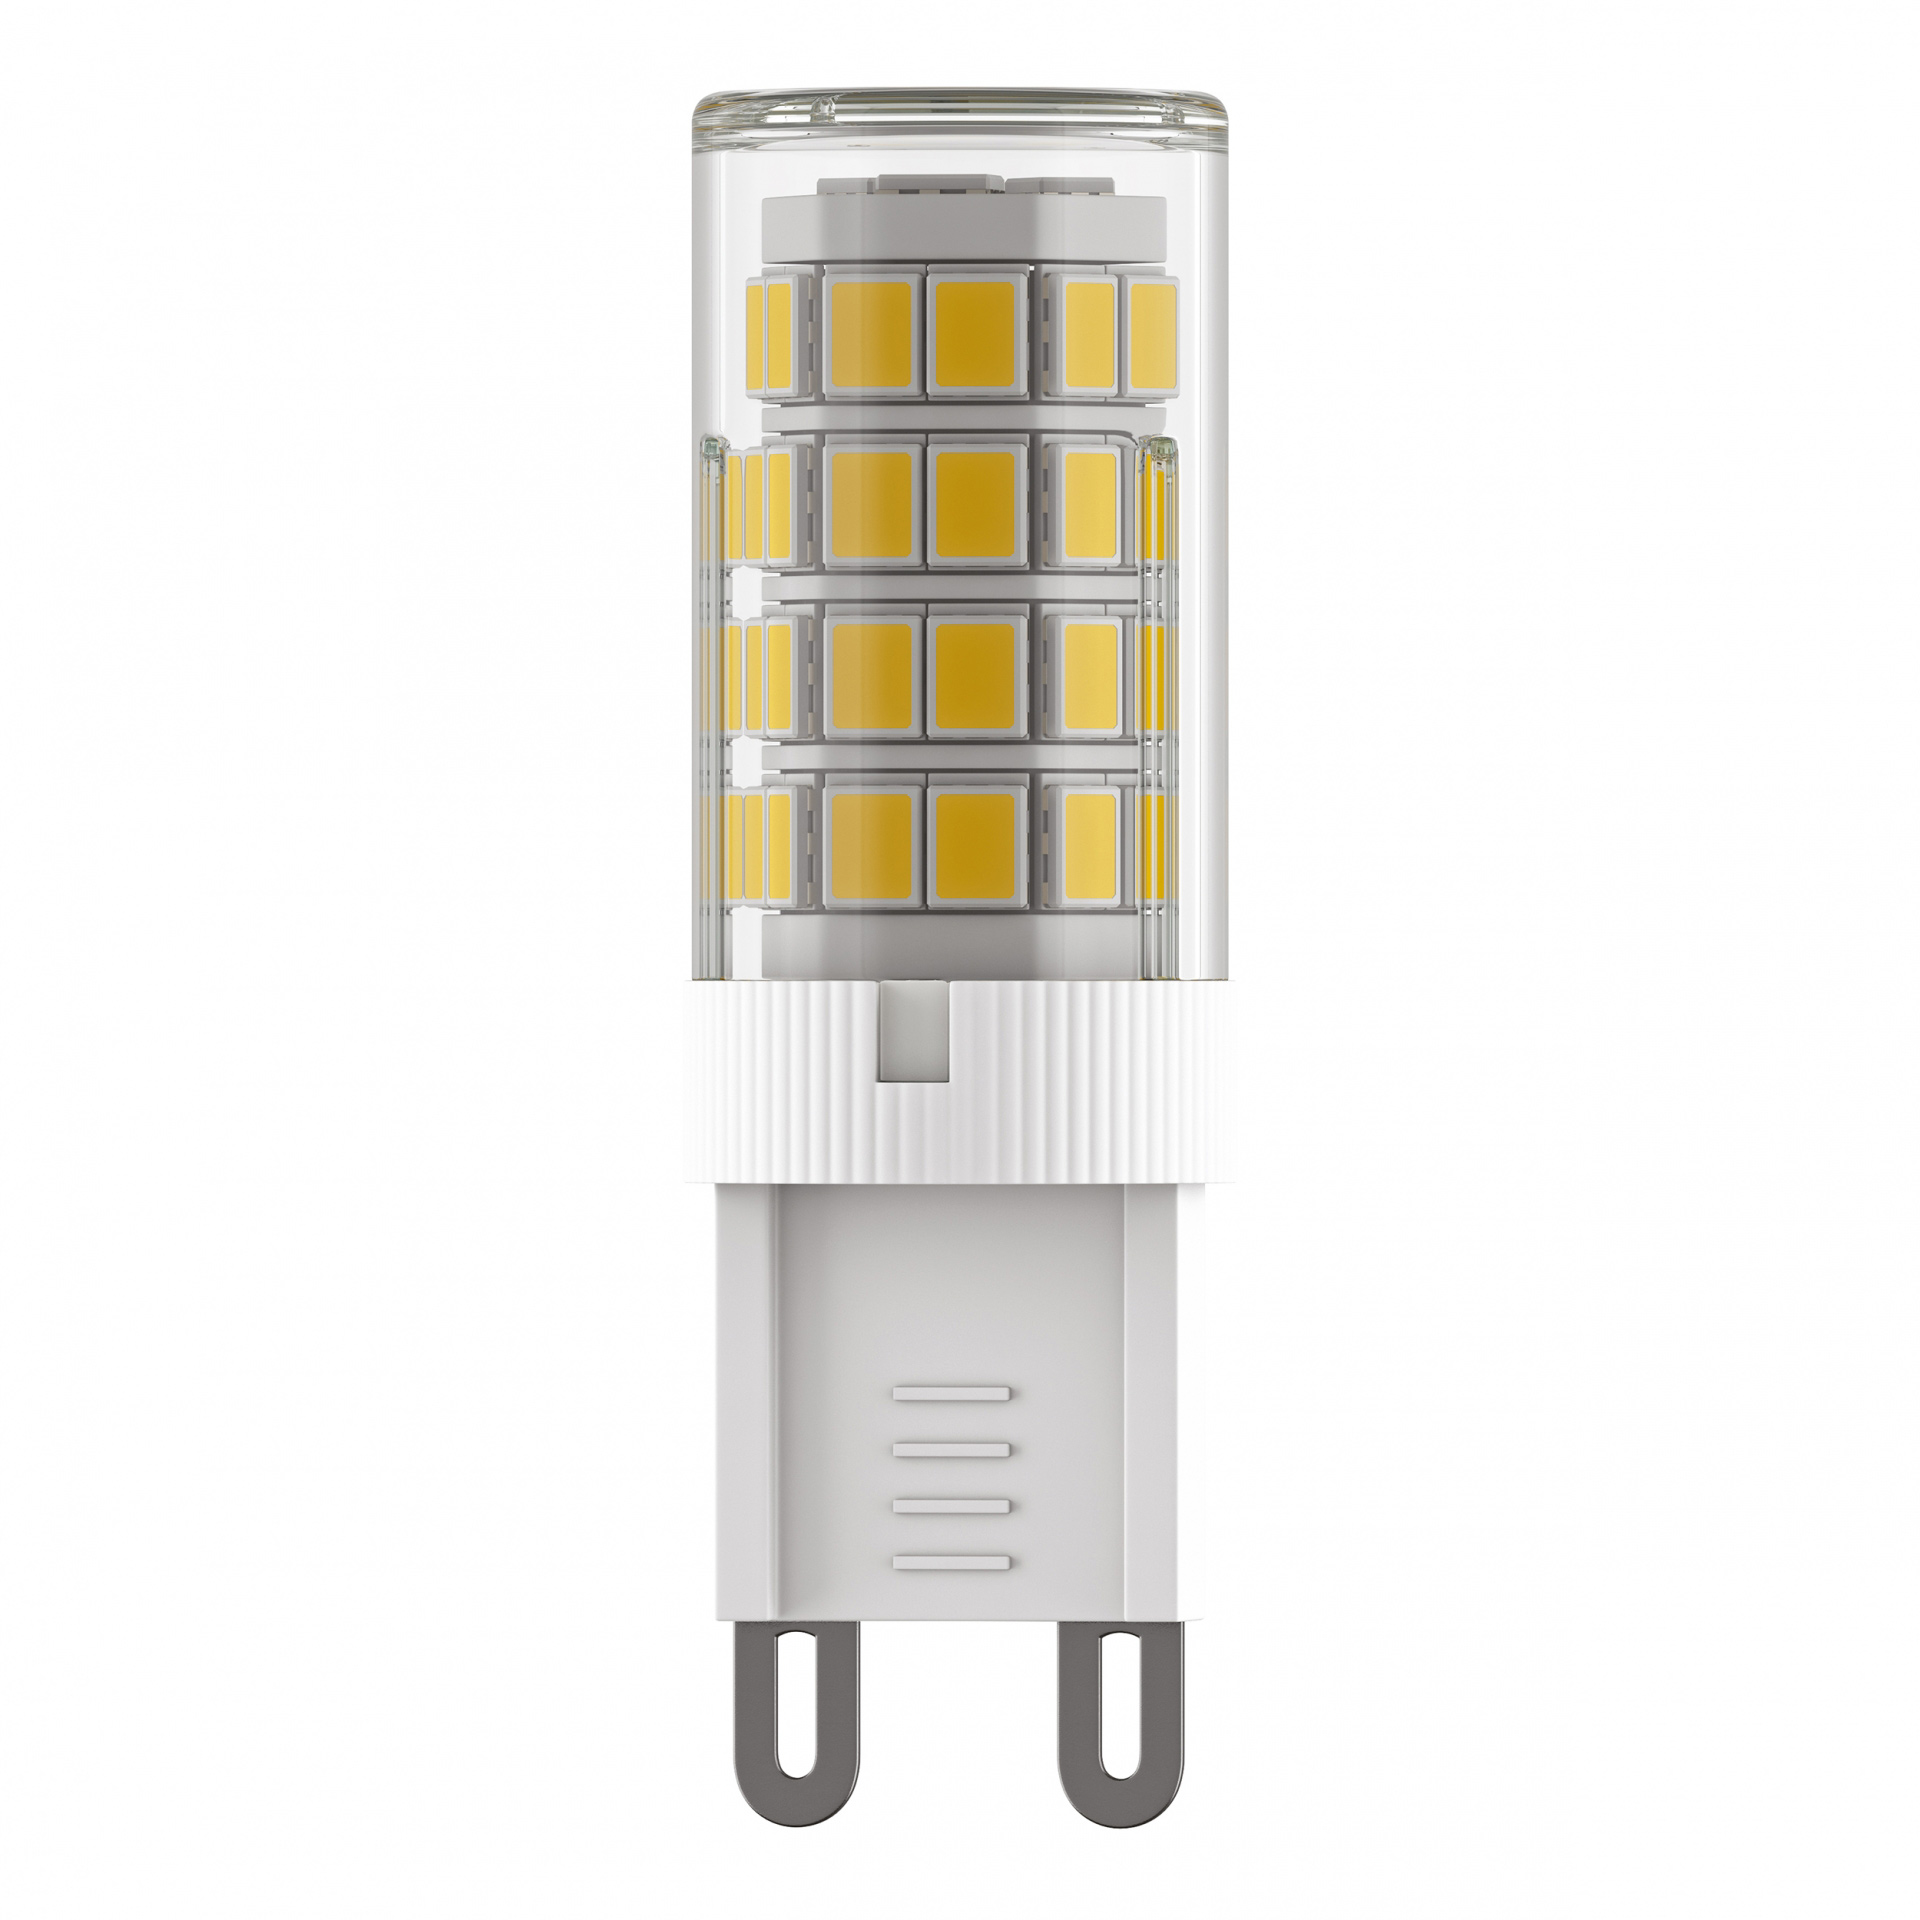 Лампа LED 220V JC G9 6W=60W 492LM 360G CL 3000K 20000H Lightstar 940452